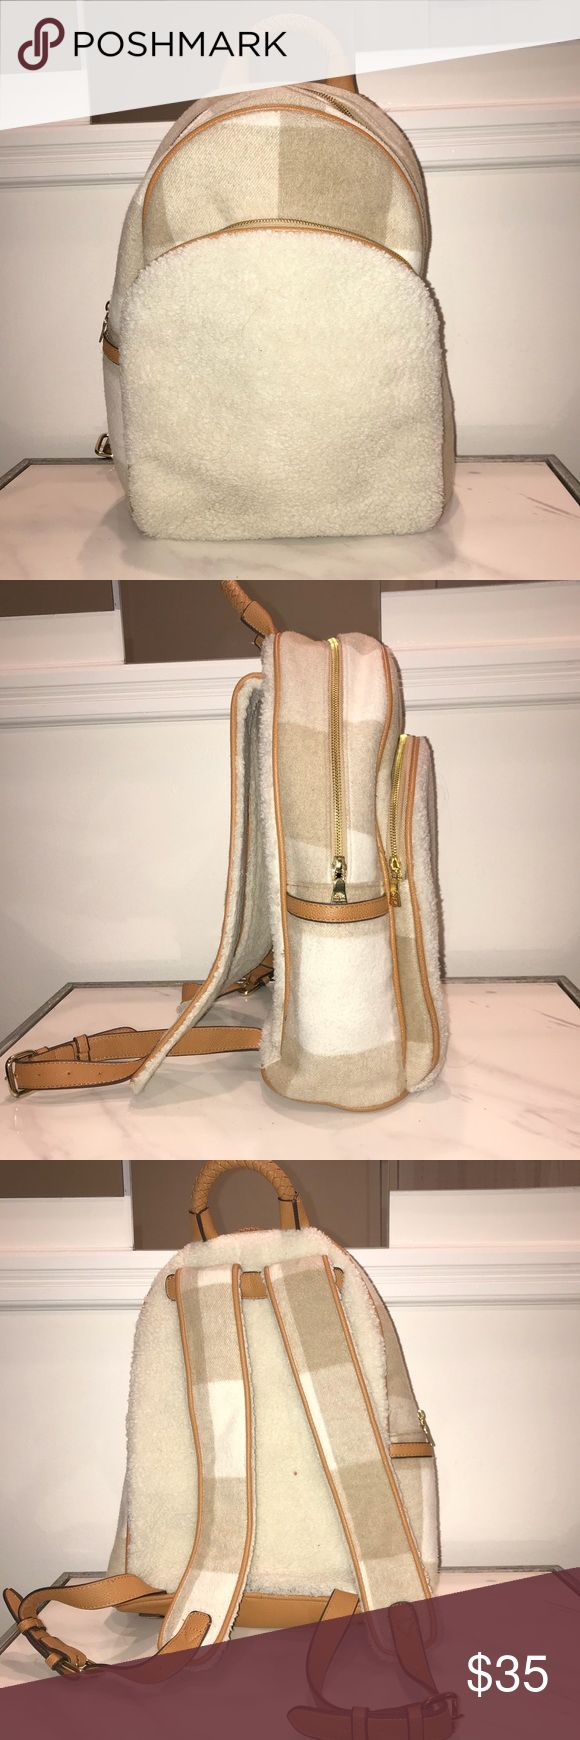 Adam Lippes for target backpack Wool like backpack in excellent condition only held once Adam Lippes For Target Bags Backpacks